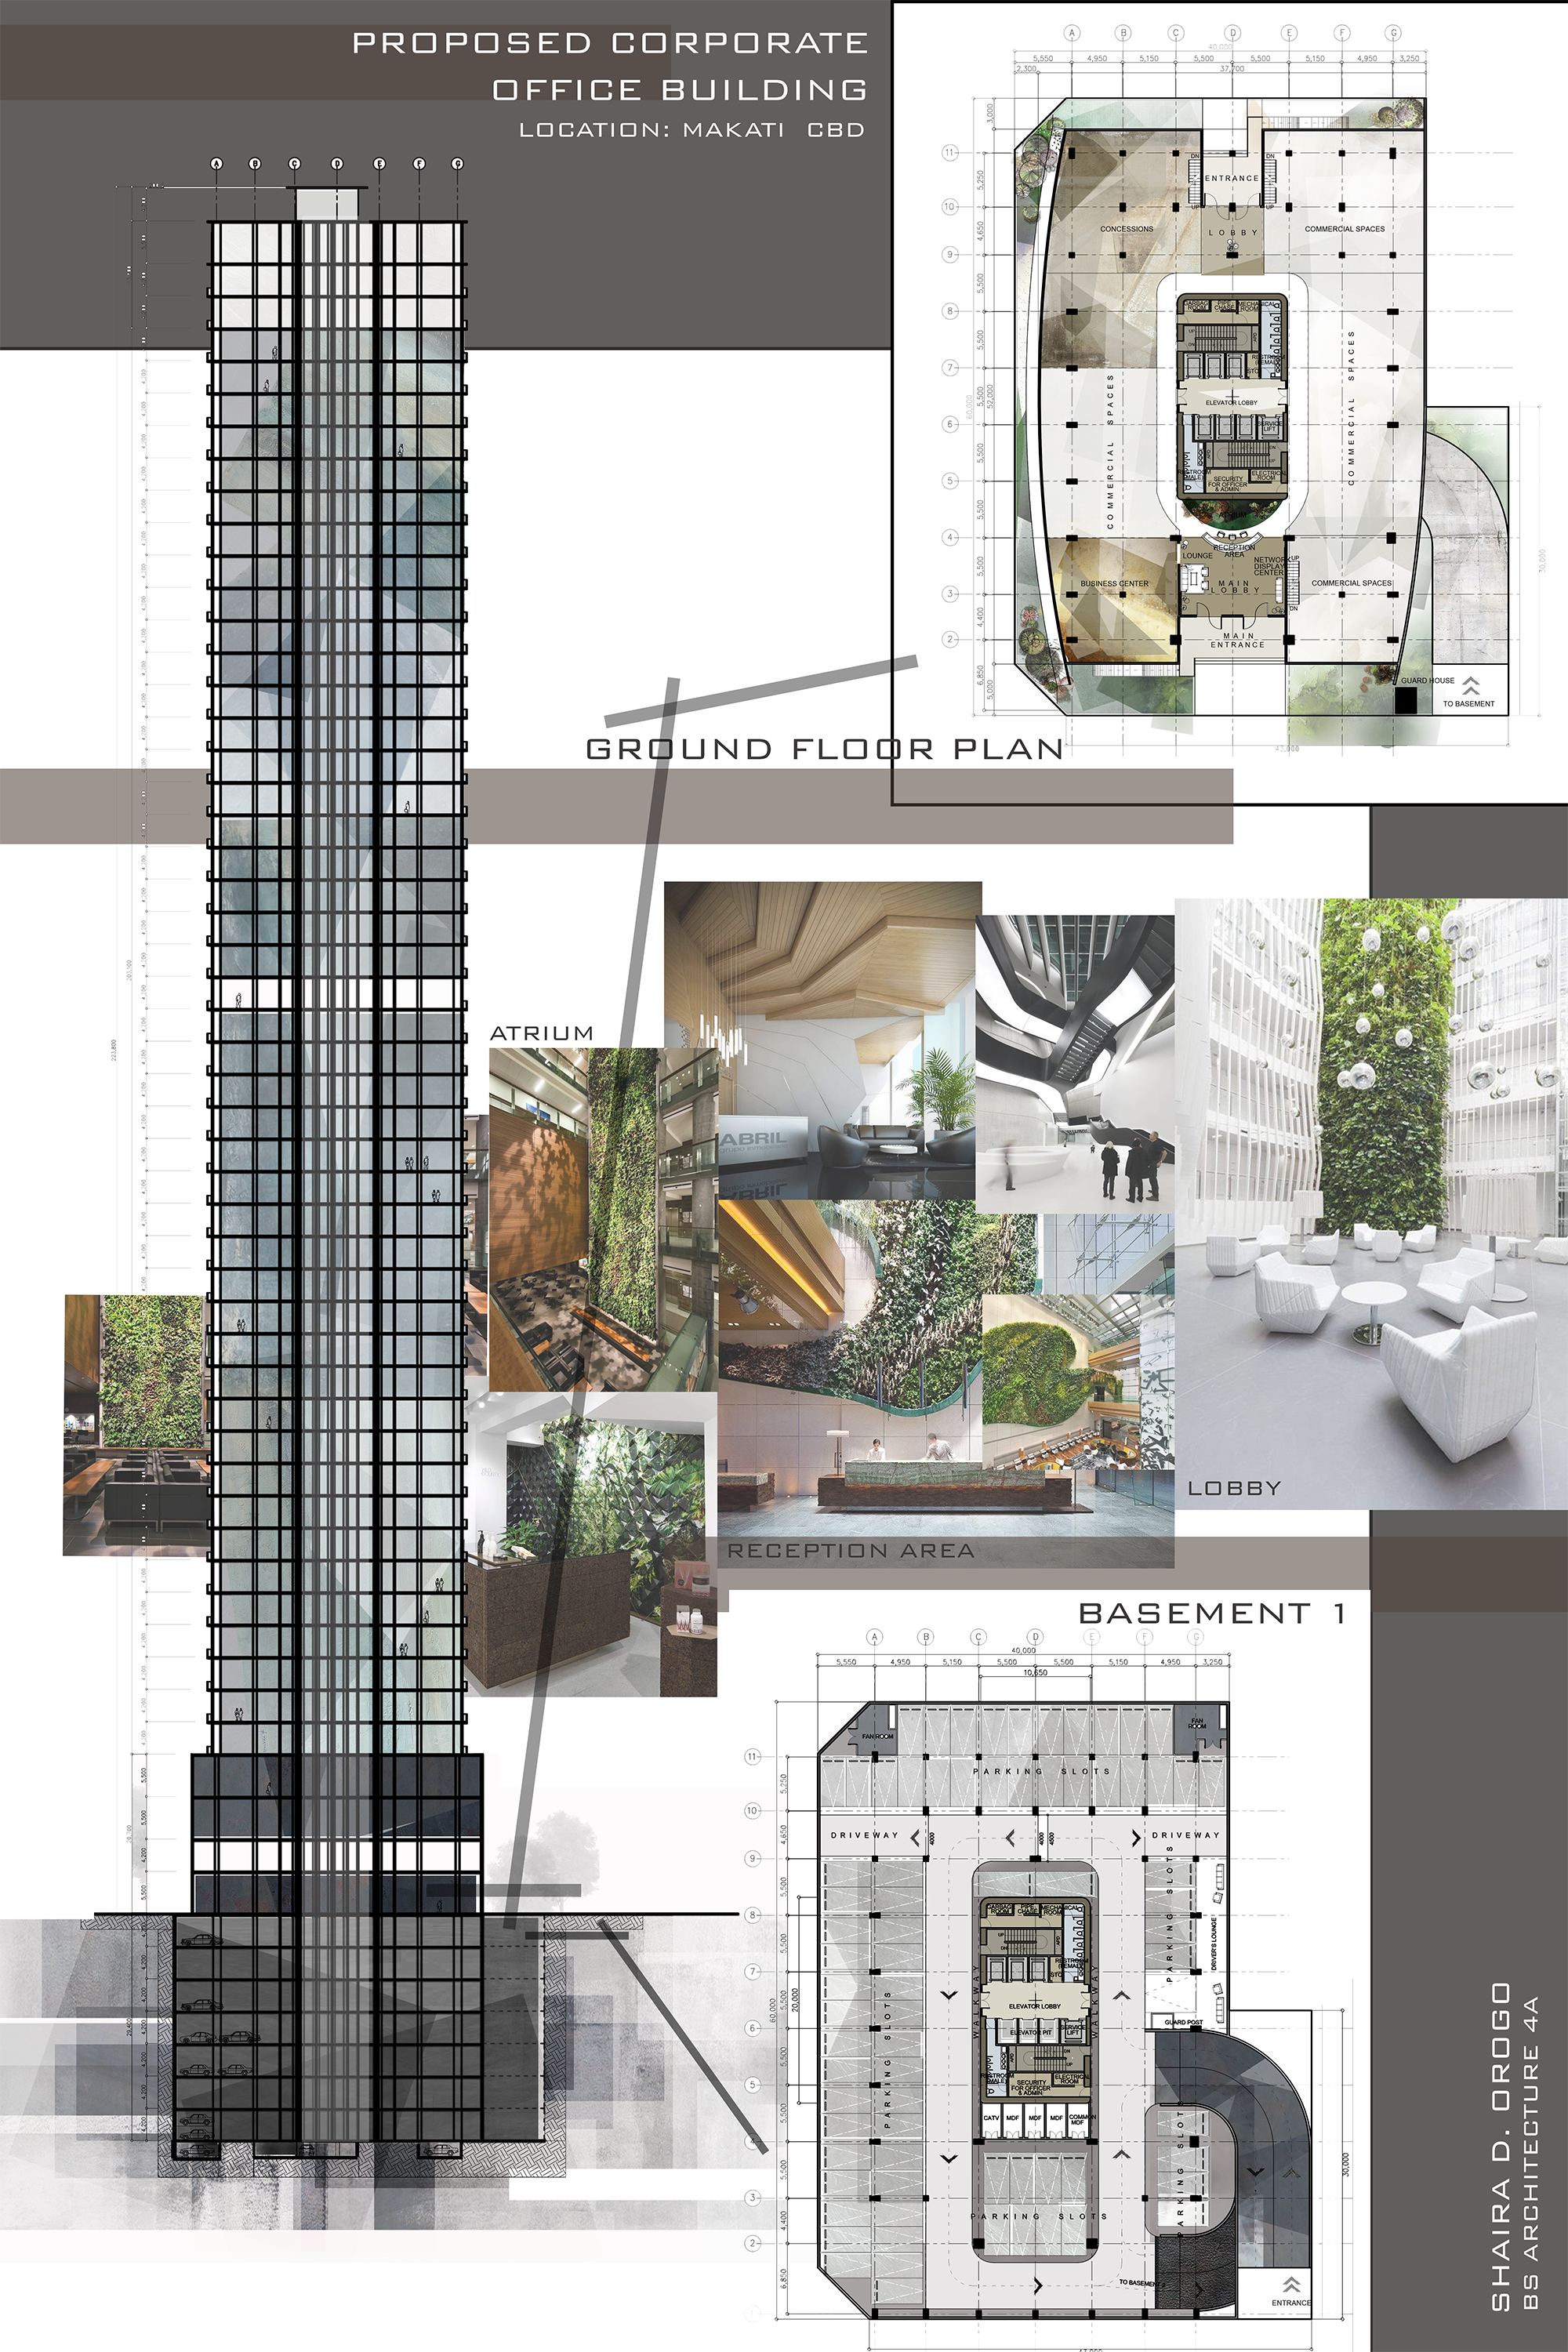 Design 8 proposed corporate office building high rise Green plans